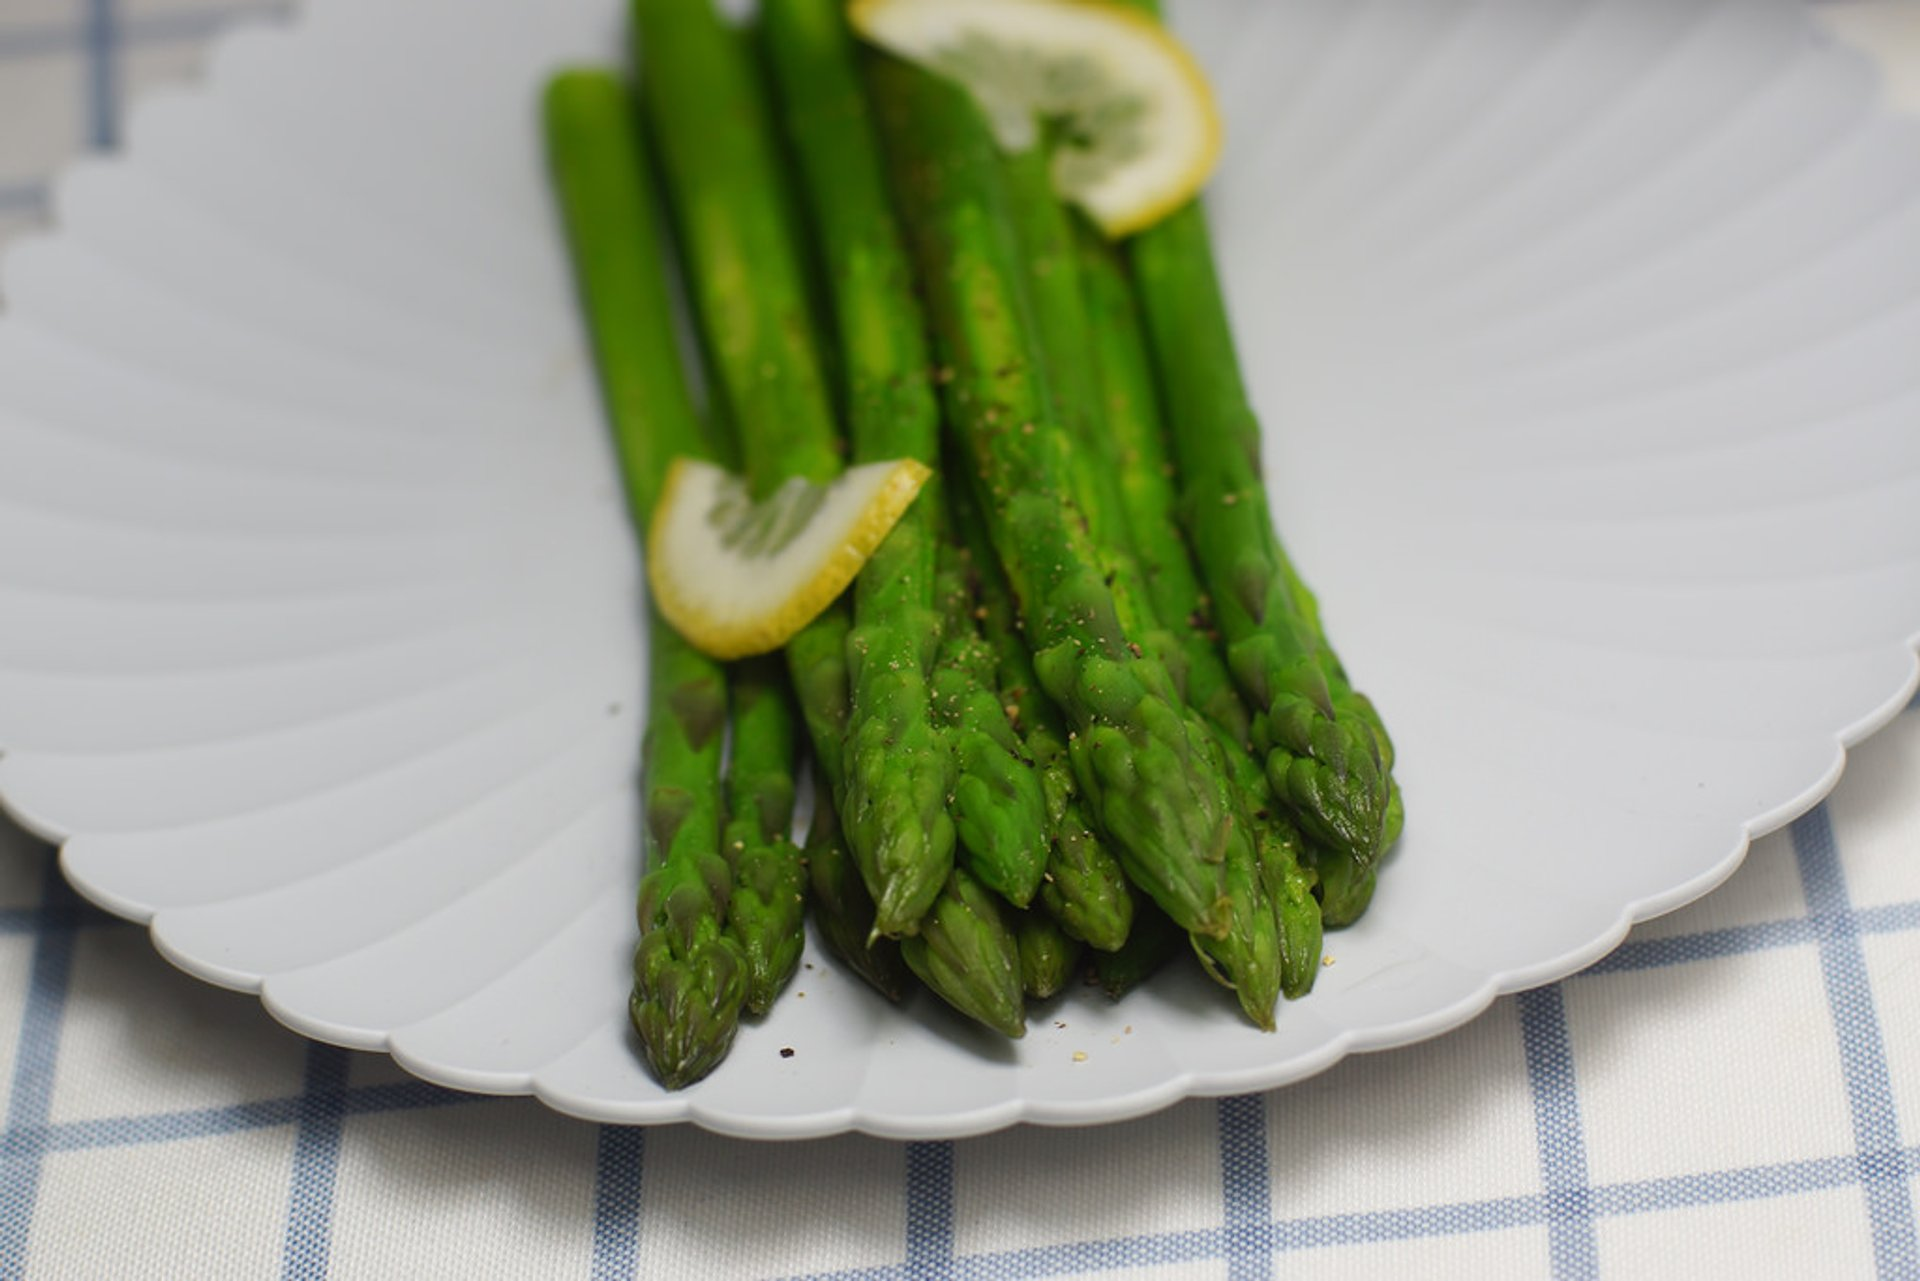 Asparagus in Japan - Best Season 2020